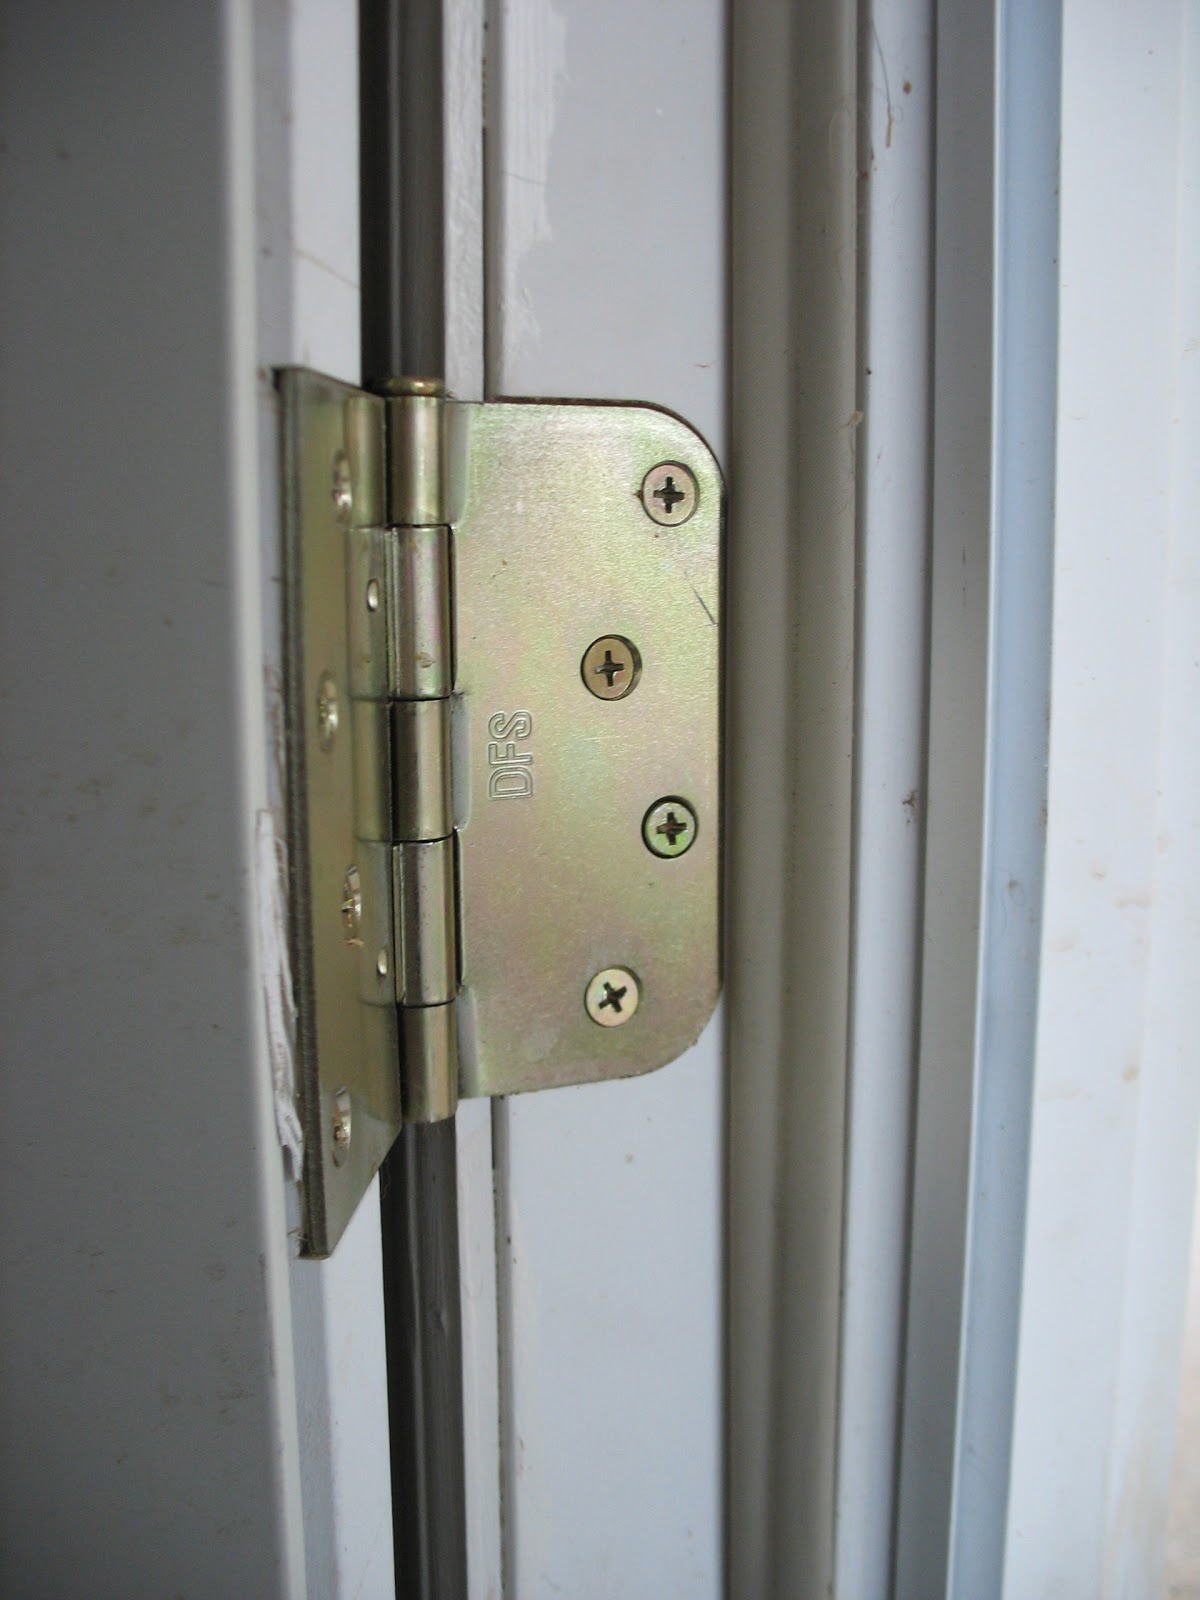 Slot in door hinges